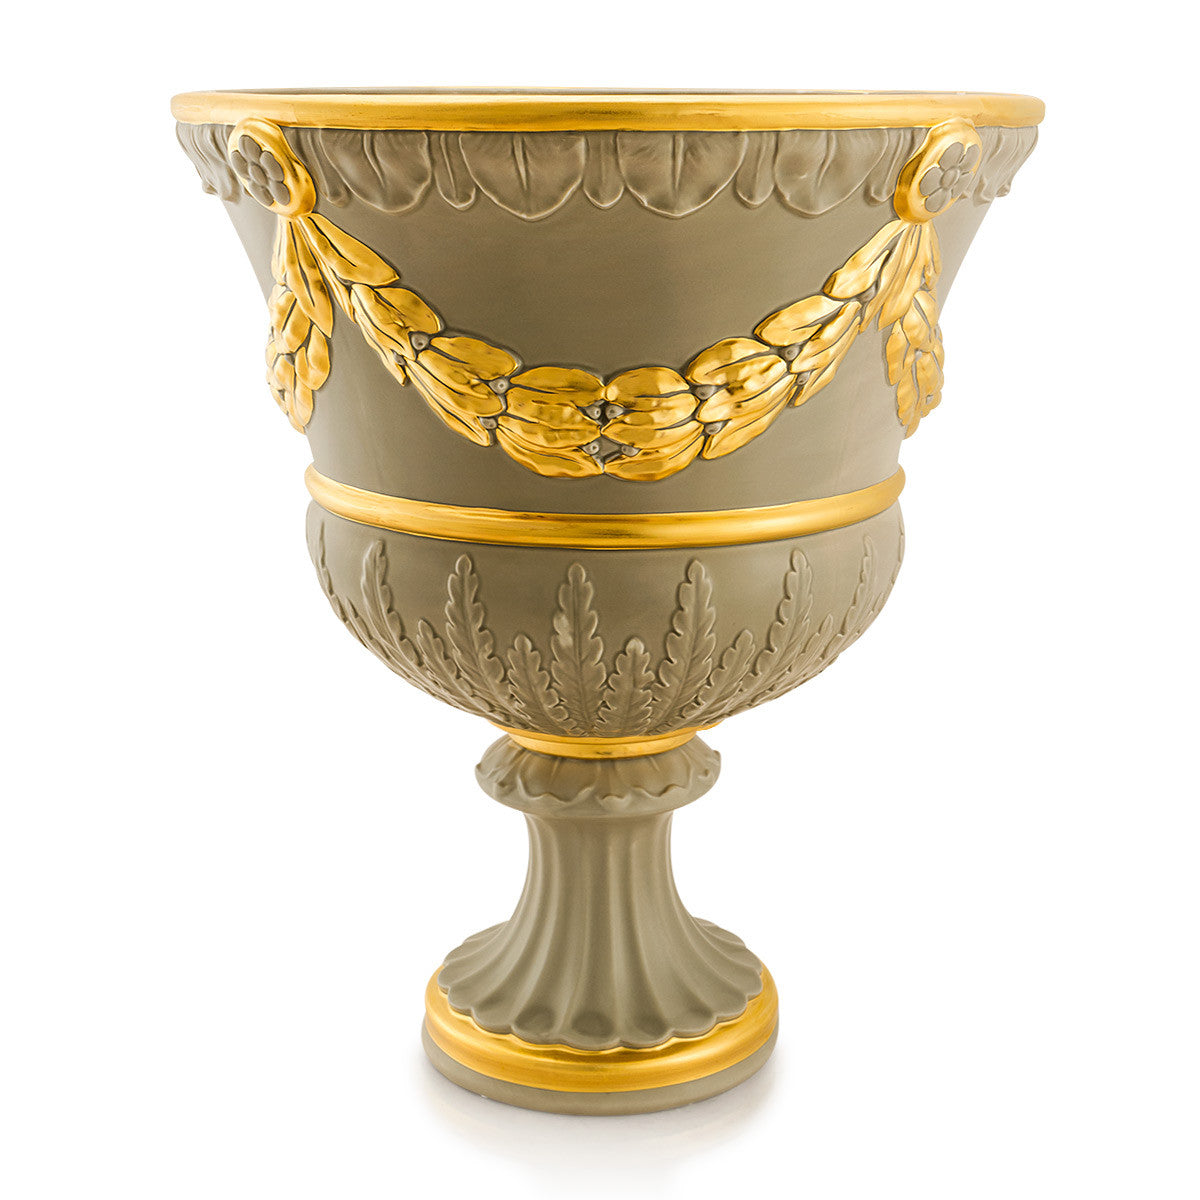 Ceramic krater vase with relief festoon